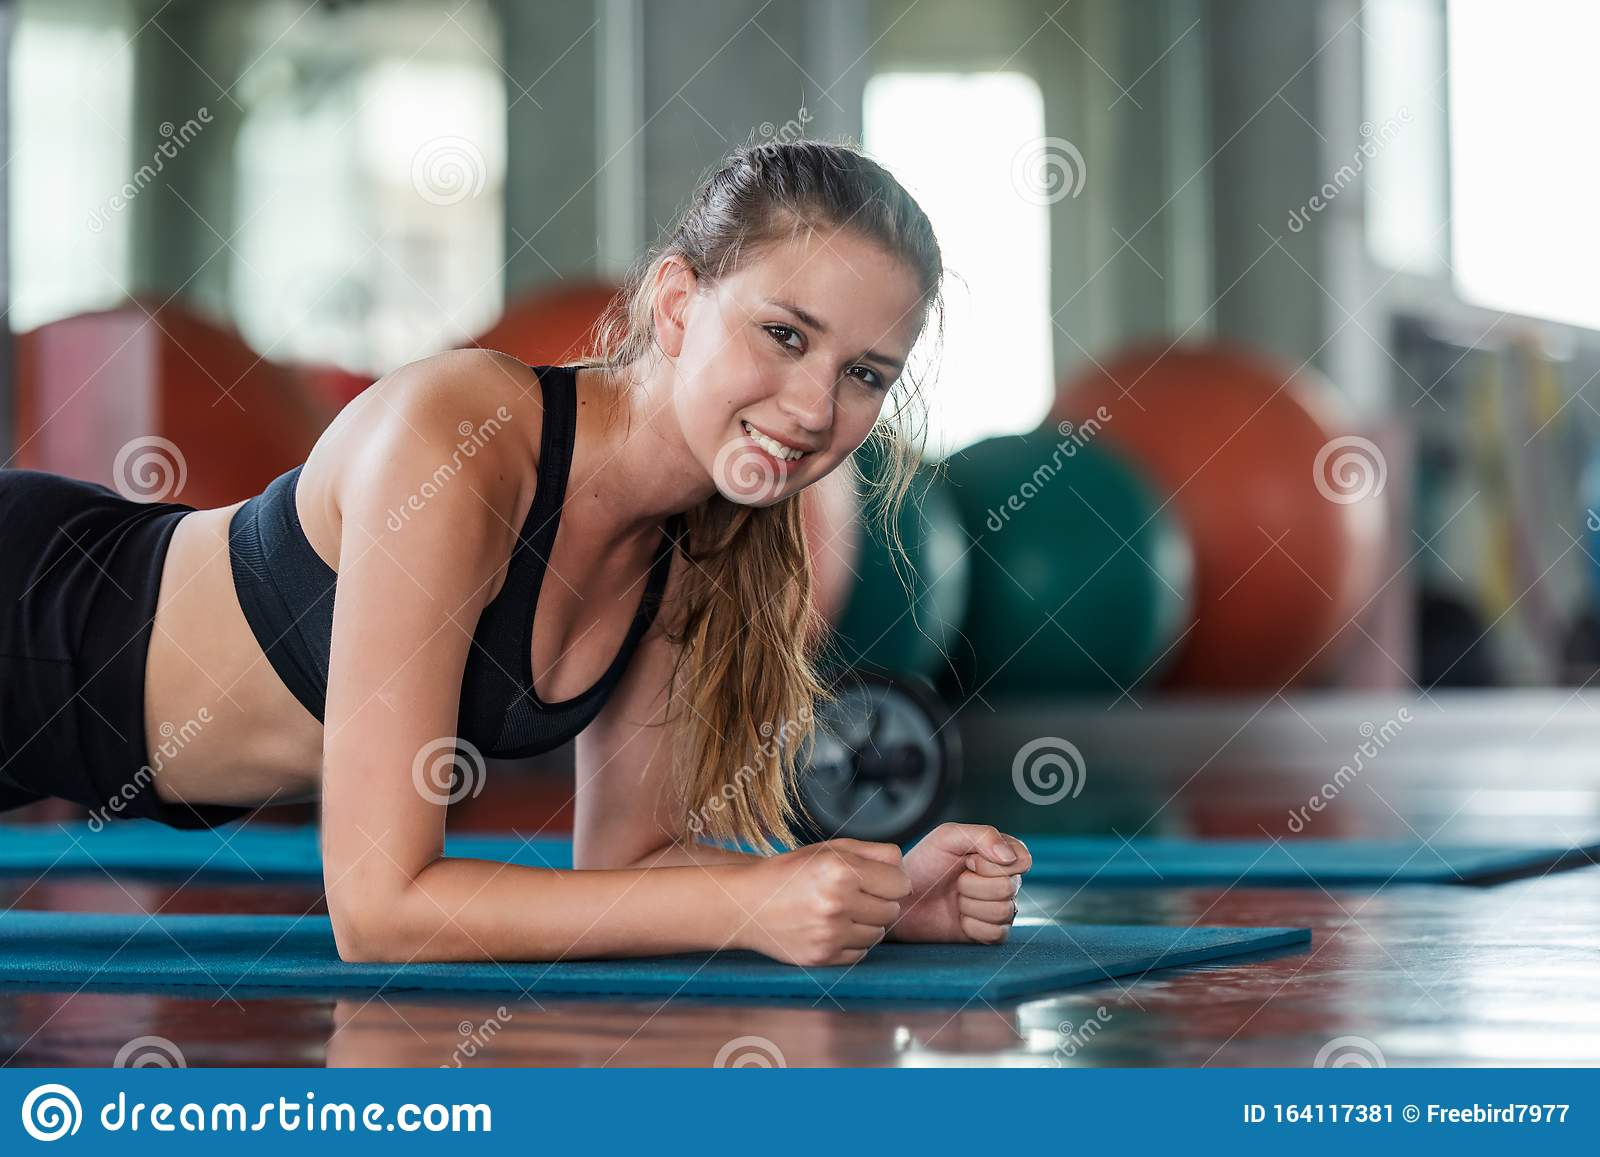 Lifestyle Women Functional Training Exercise And Cross Fit The Gym Workout For Healthy Care And Body Building Fitness Instructo Stock Image Image Of Caucasian Exercise 164117381 See more ideas about fit women, fitness body, fitness motivation. https www dreamstime com lifestyle women functional training exercise cross fit gym workout healthy care body building fitness instructo woman image164117381